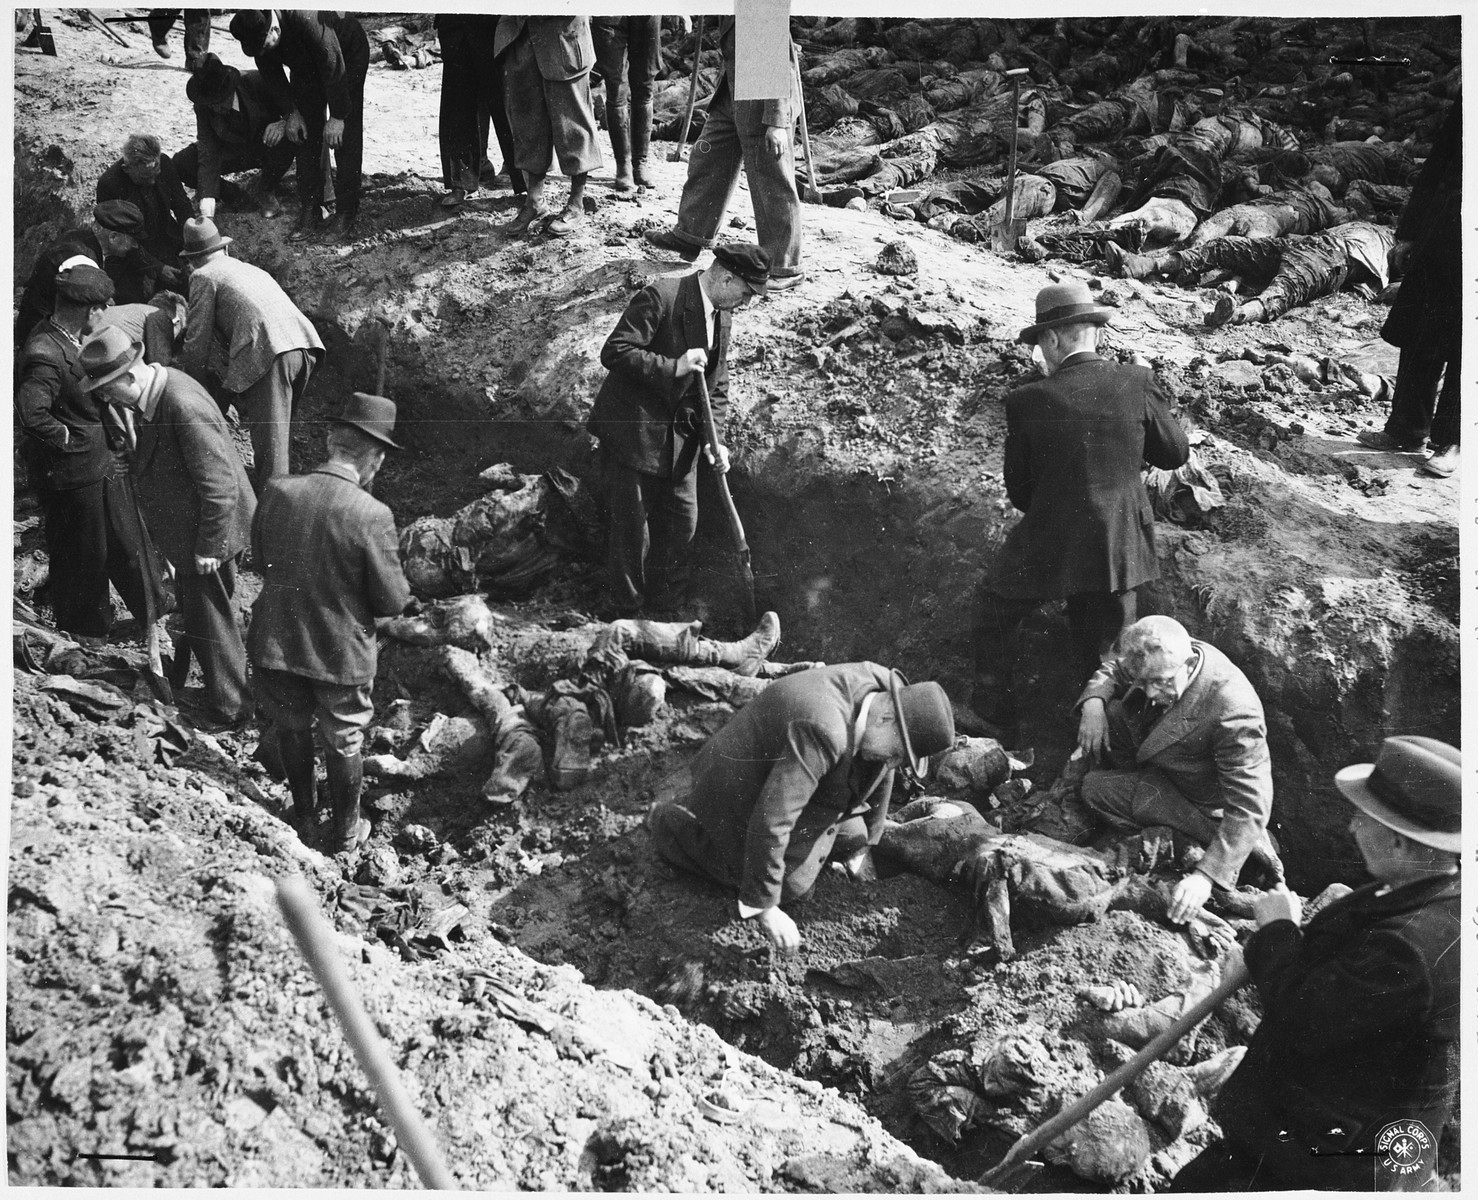 German civilians exhume a mass grave containing the bodies of concentration camp prisoners killed by the SS in a barn just outside Gardelegen.